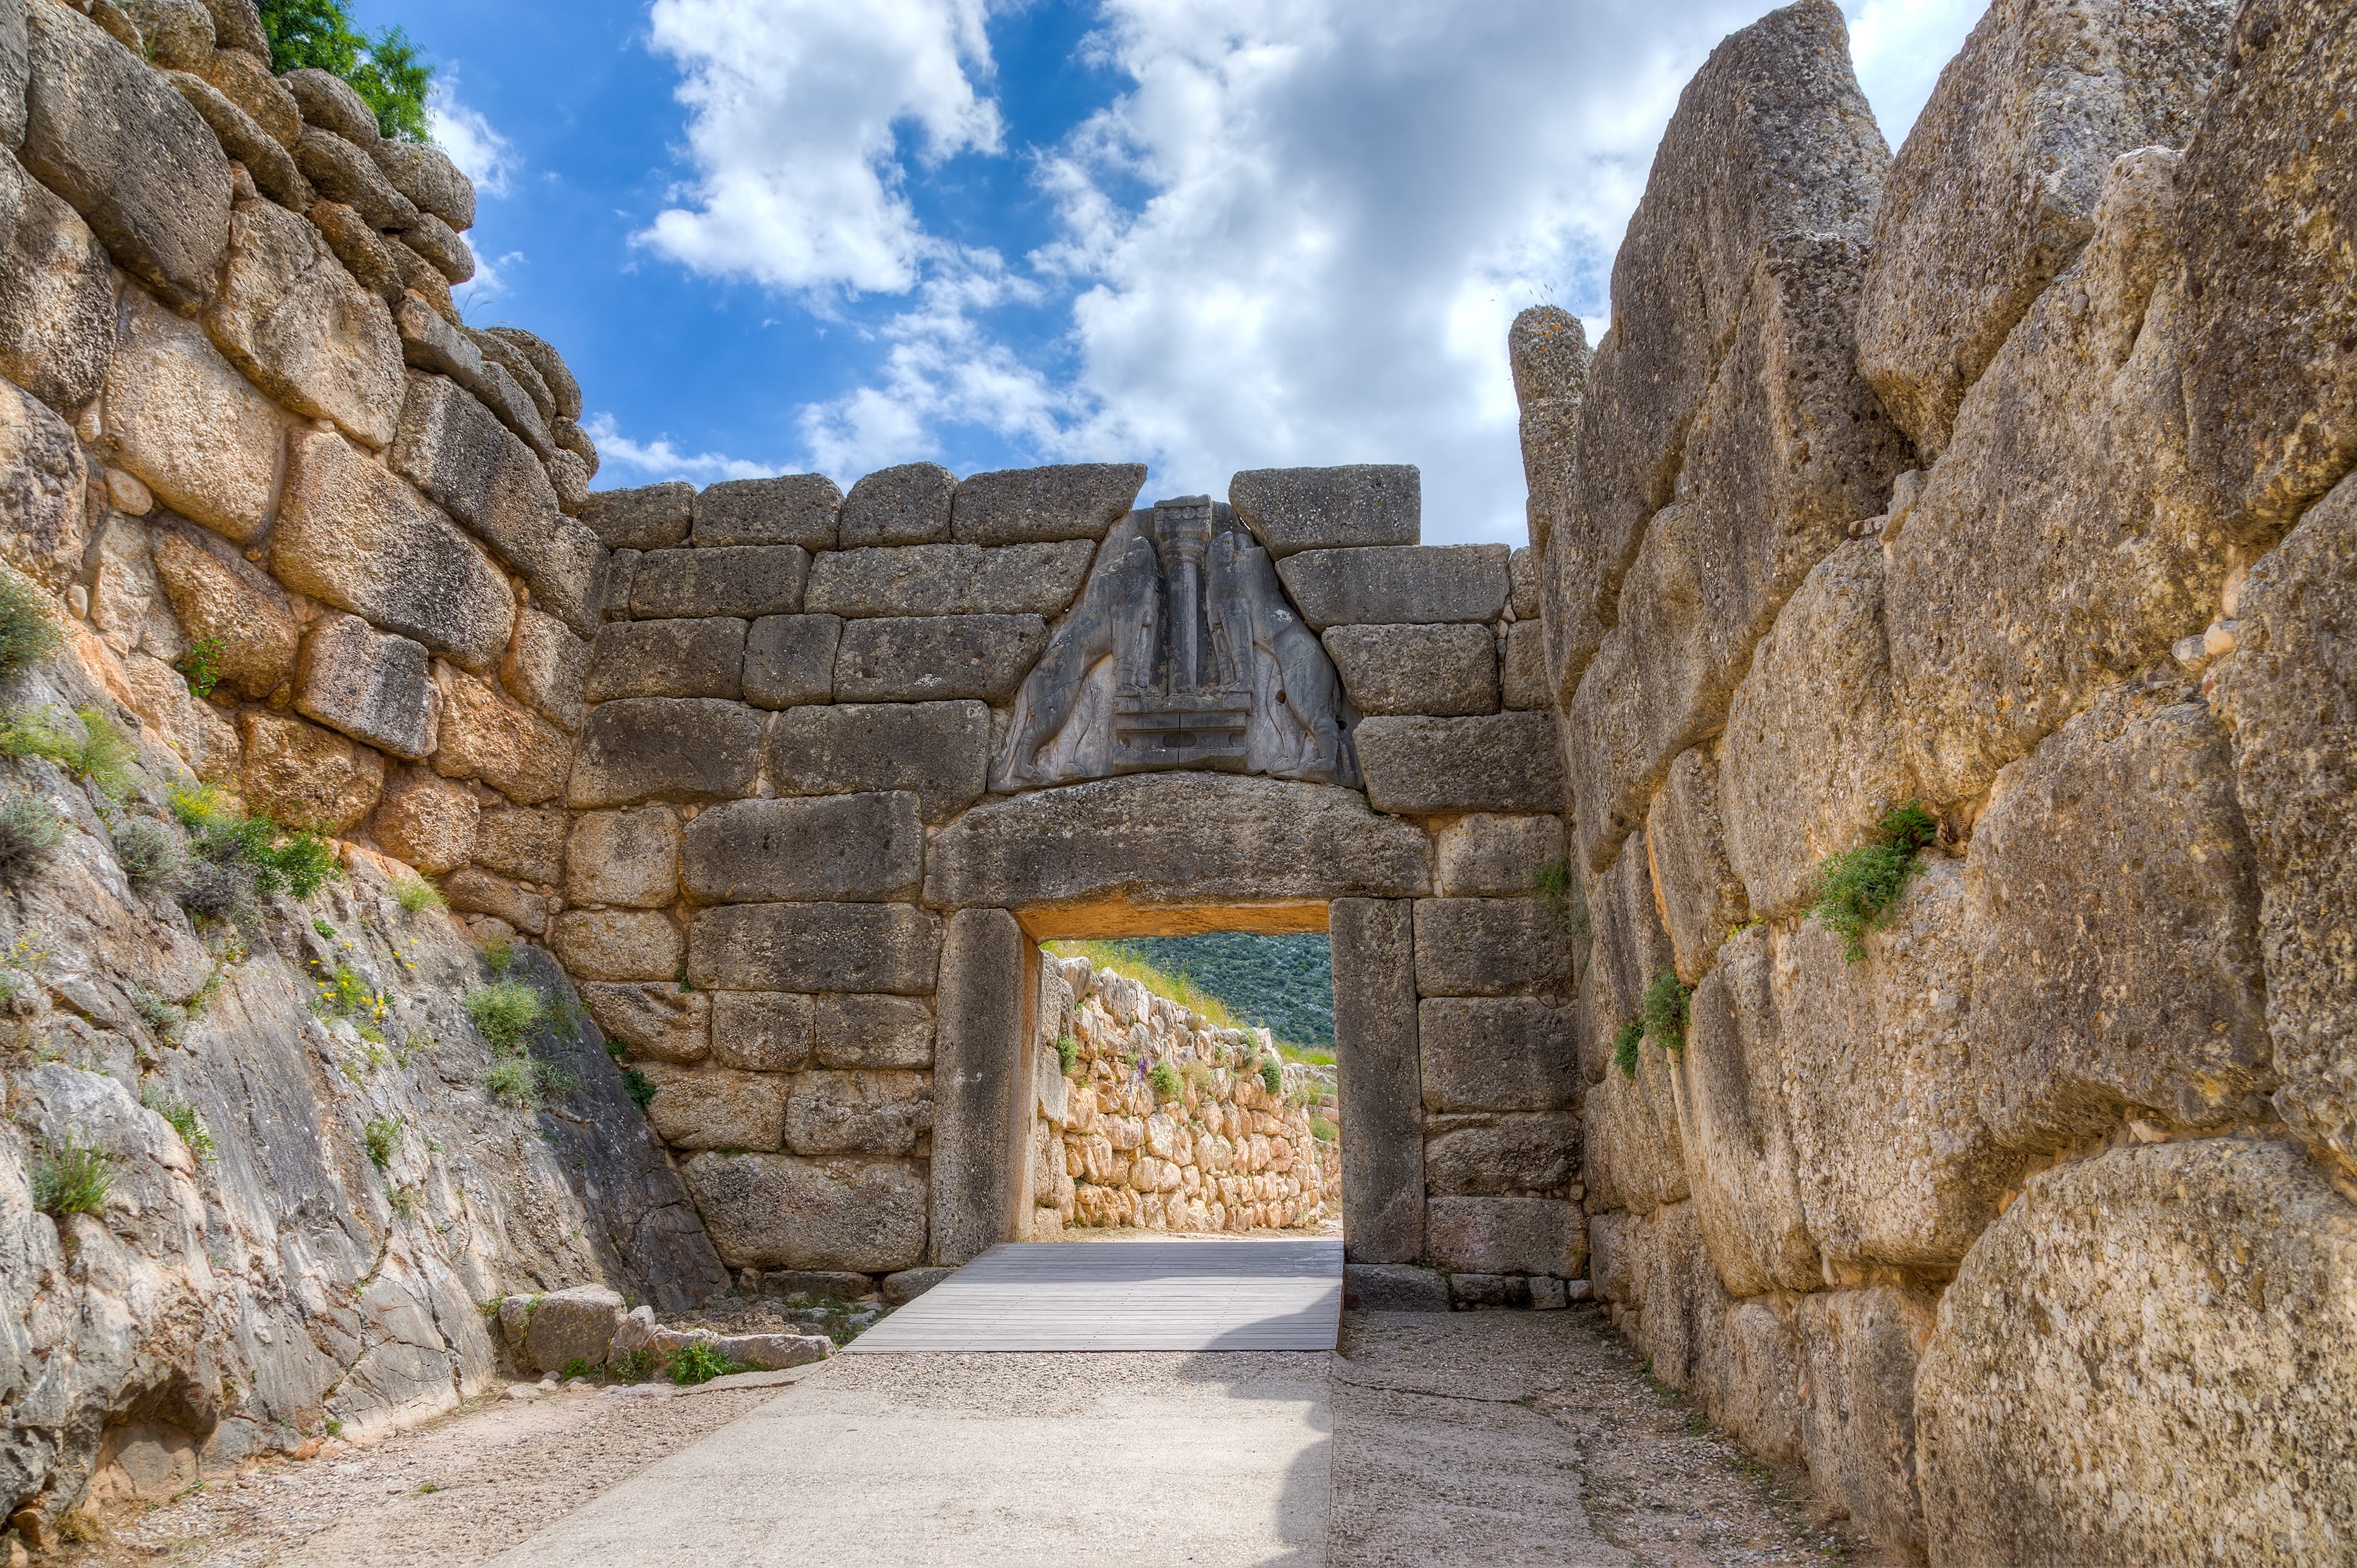 The Lion Gate was the main entrance of the Bronze Age citadel of Mycenae, southern Greece. It was erected during the 13th century BC in the northwest side of the acropolis and is named after the relief sculpture of two lionesses in a heraldic pose that stands above the entrance. The Lion Gate is the sole surviving monumental piece of Mycenaean sculpture, as well as the largest sculpture in the prehistoric Aegean.